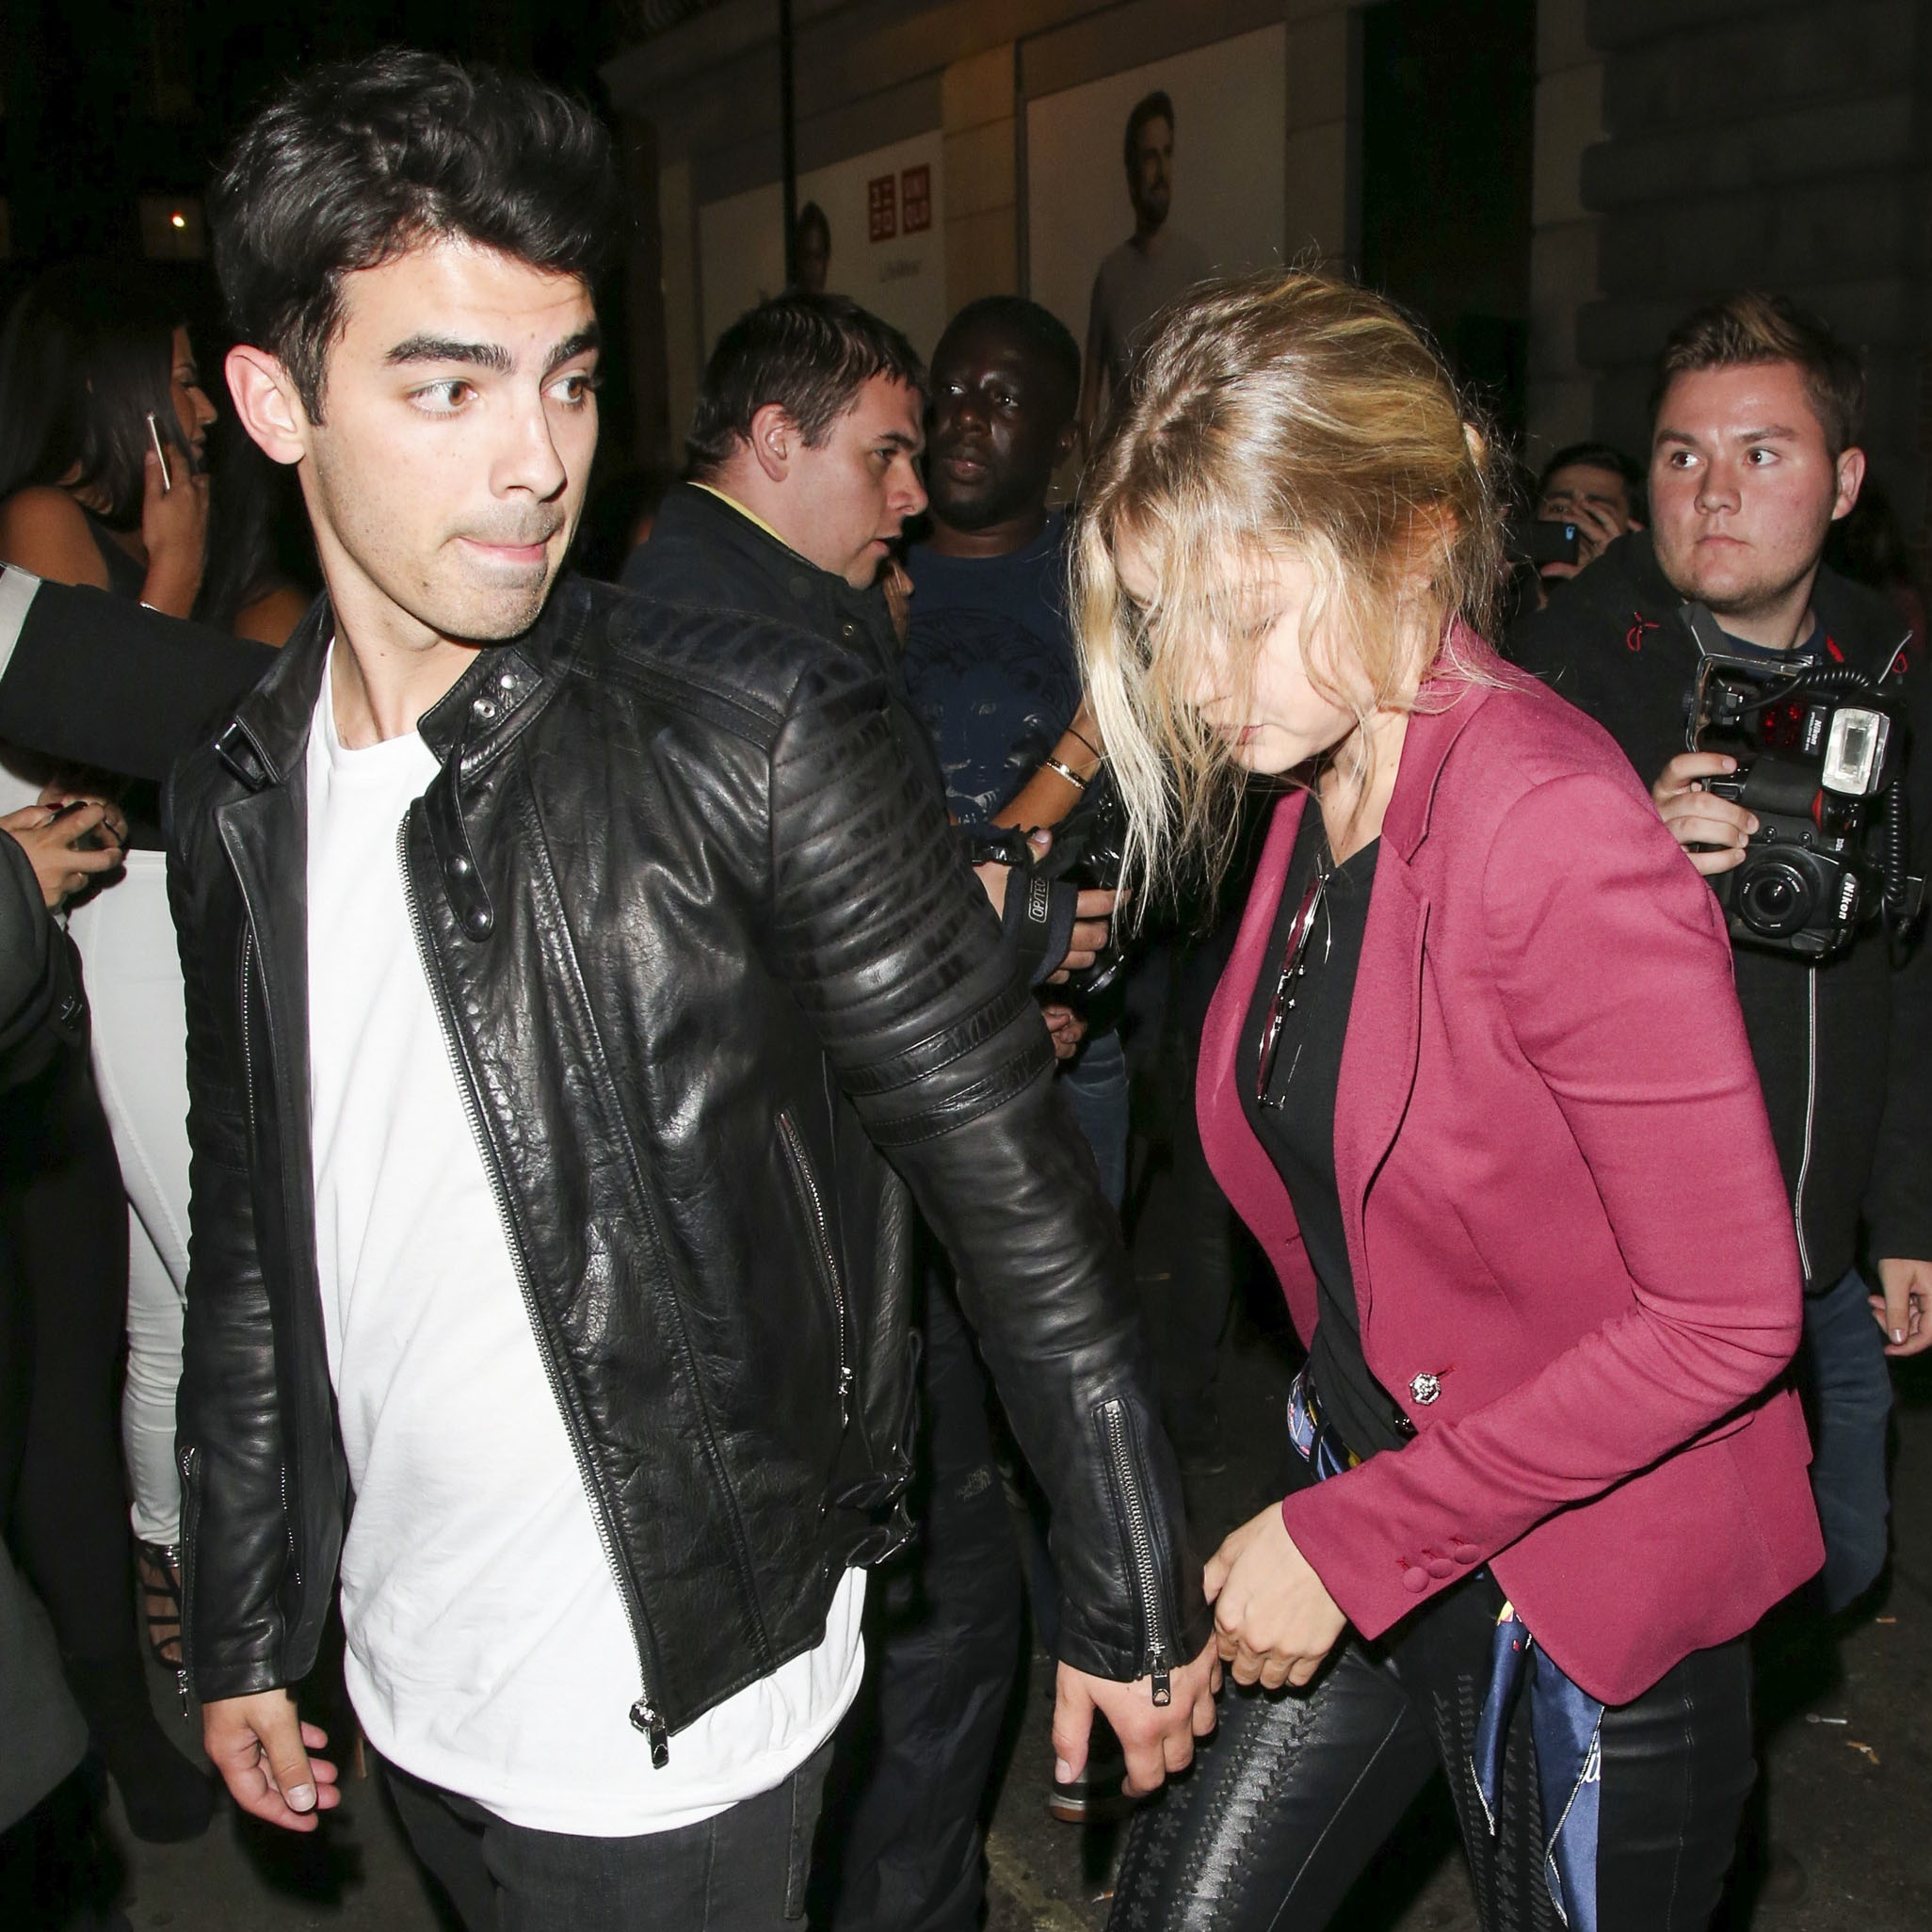 Joe Jonas & Gigi Hadid Libertine London